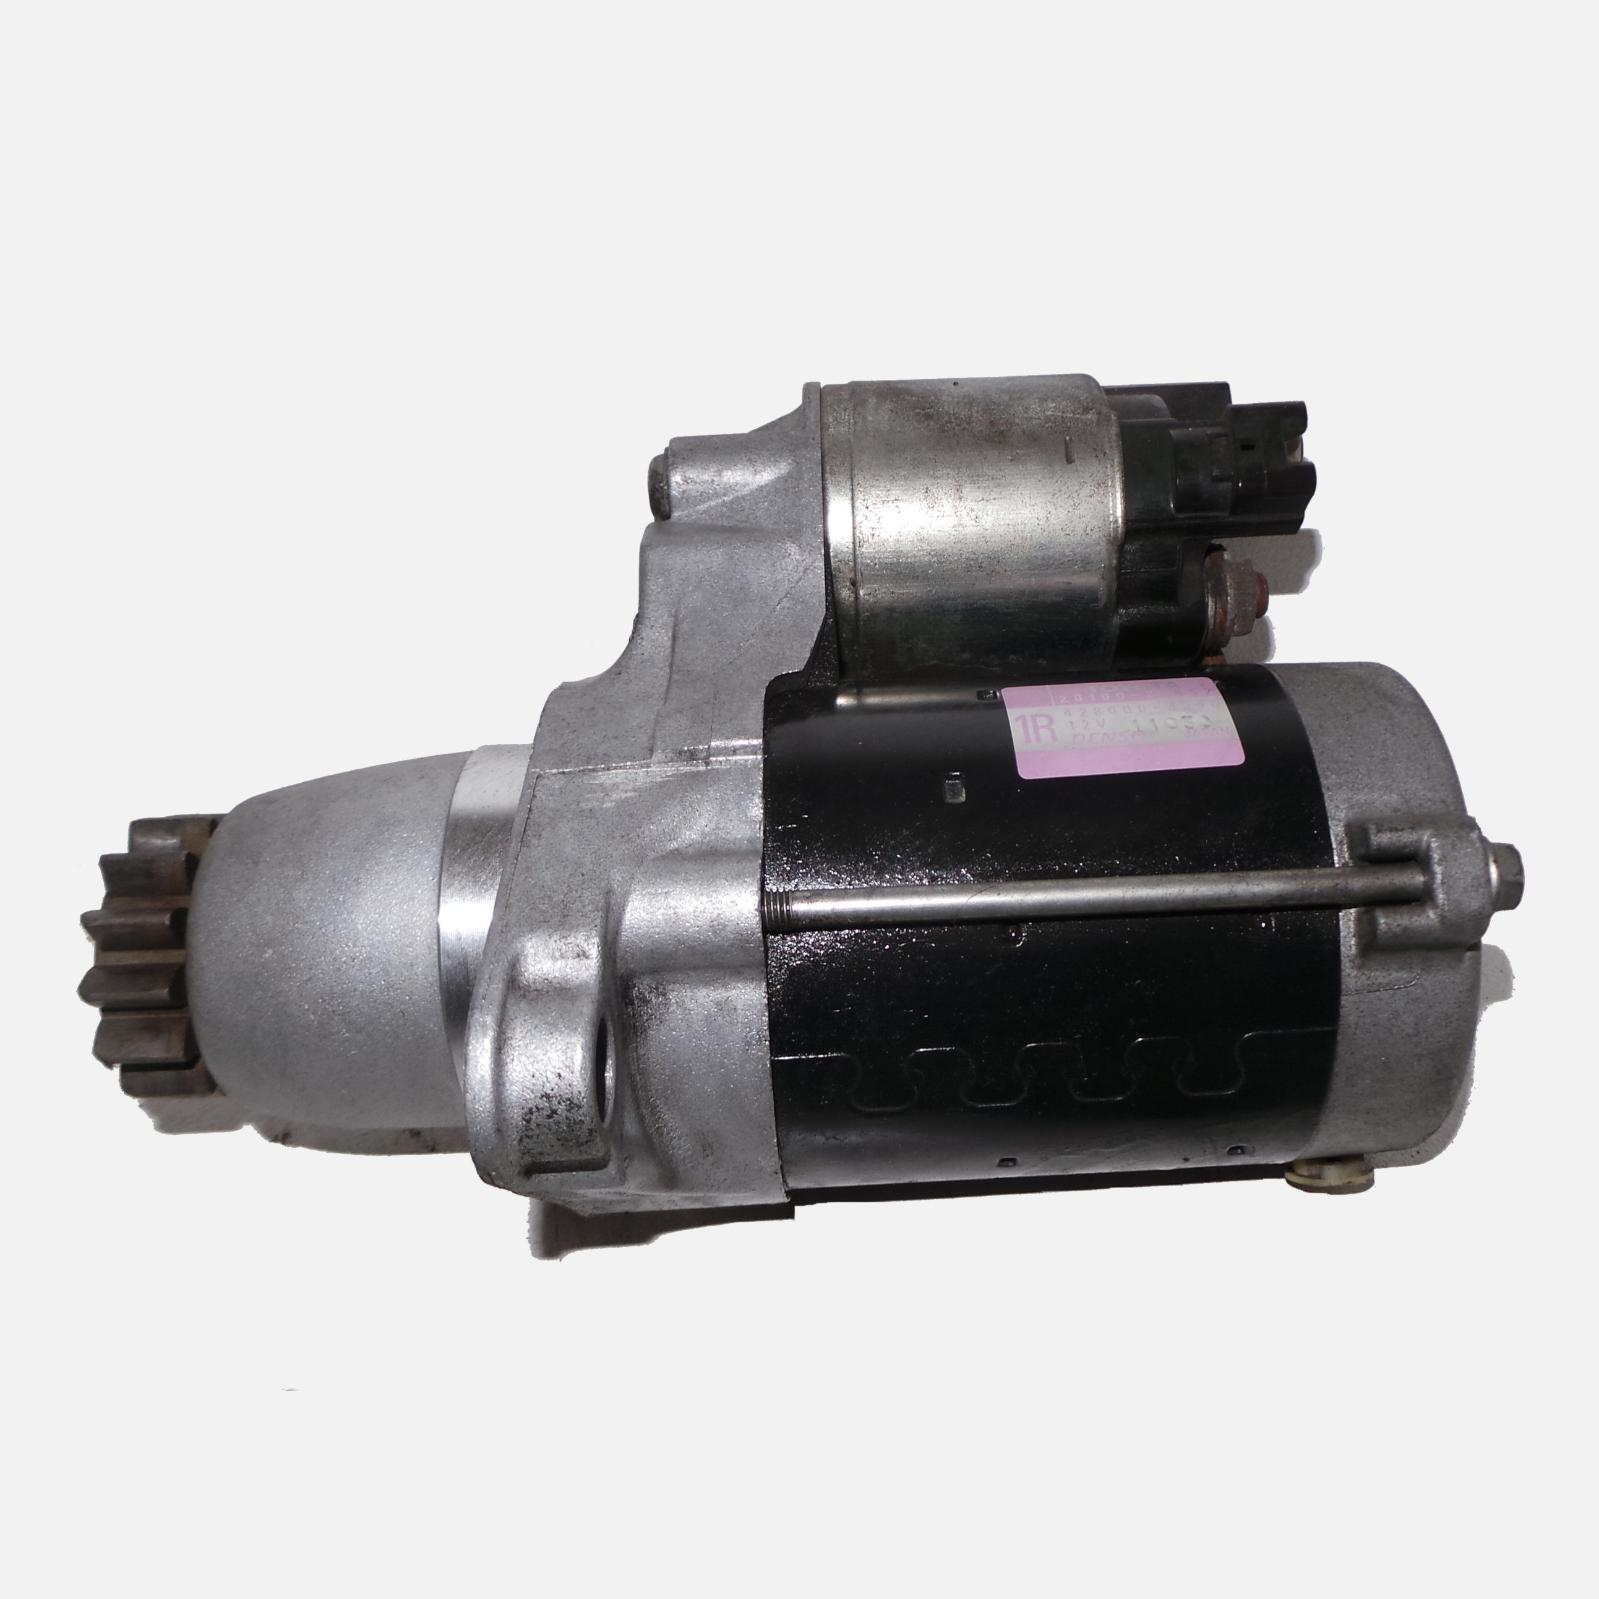 TOYOTA AVENSIS, Starter, ACM20R (AUS ONLY) 12/01-12/10